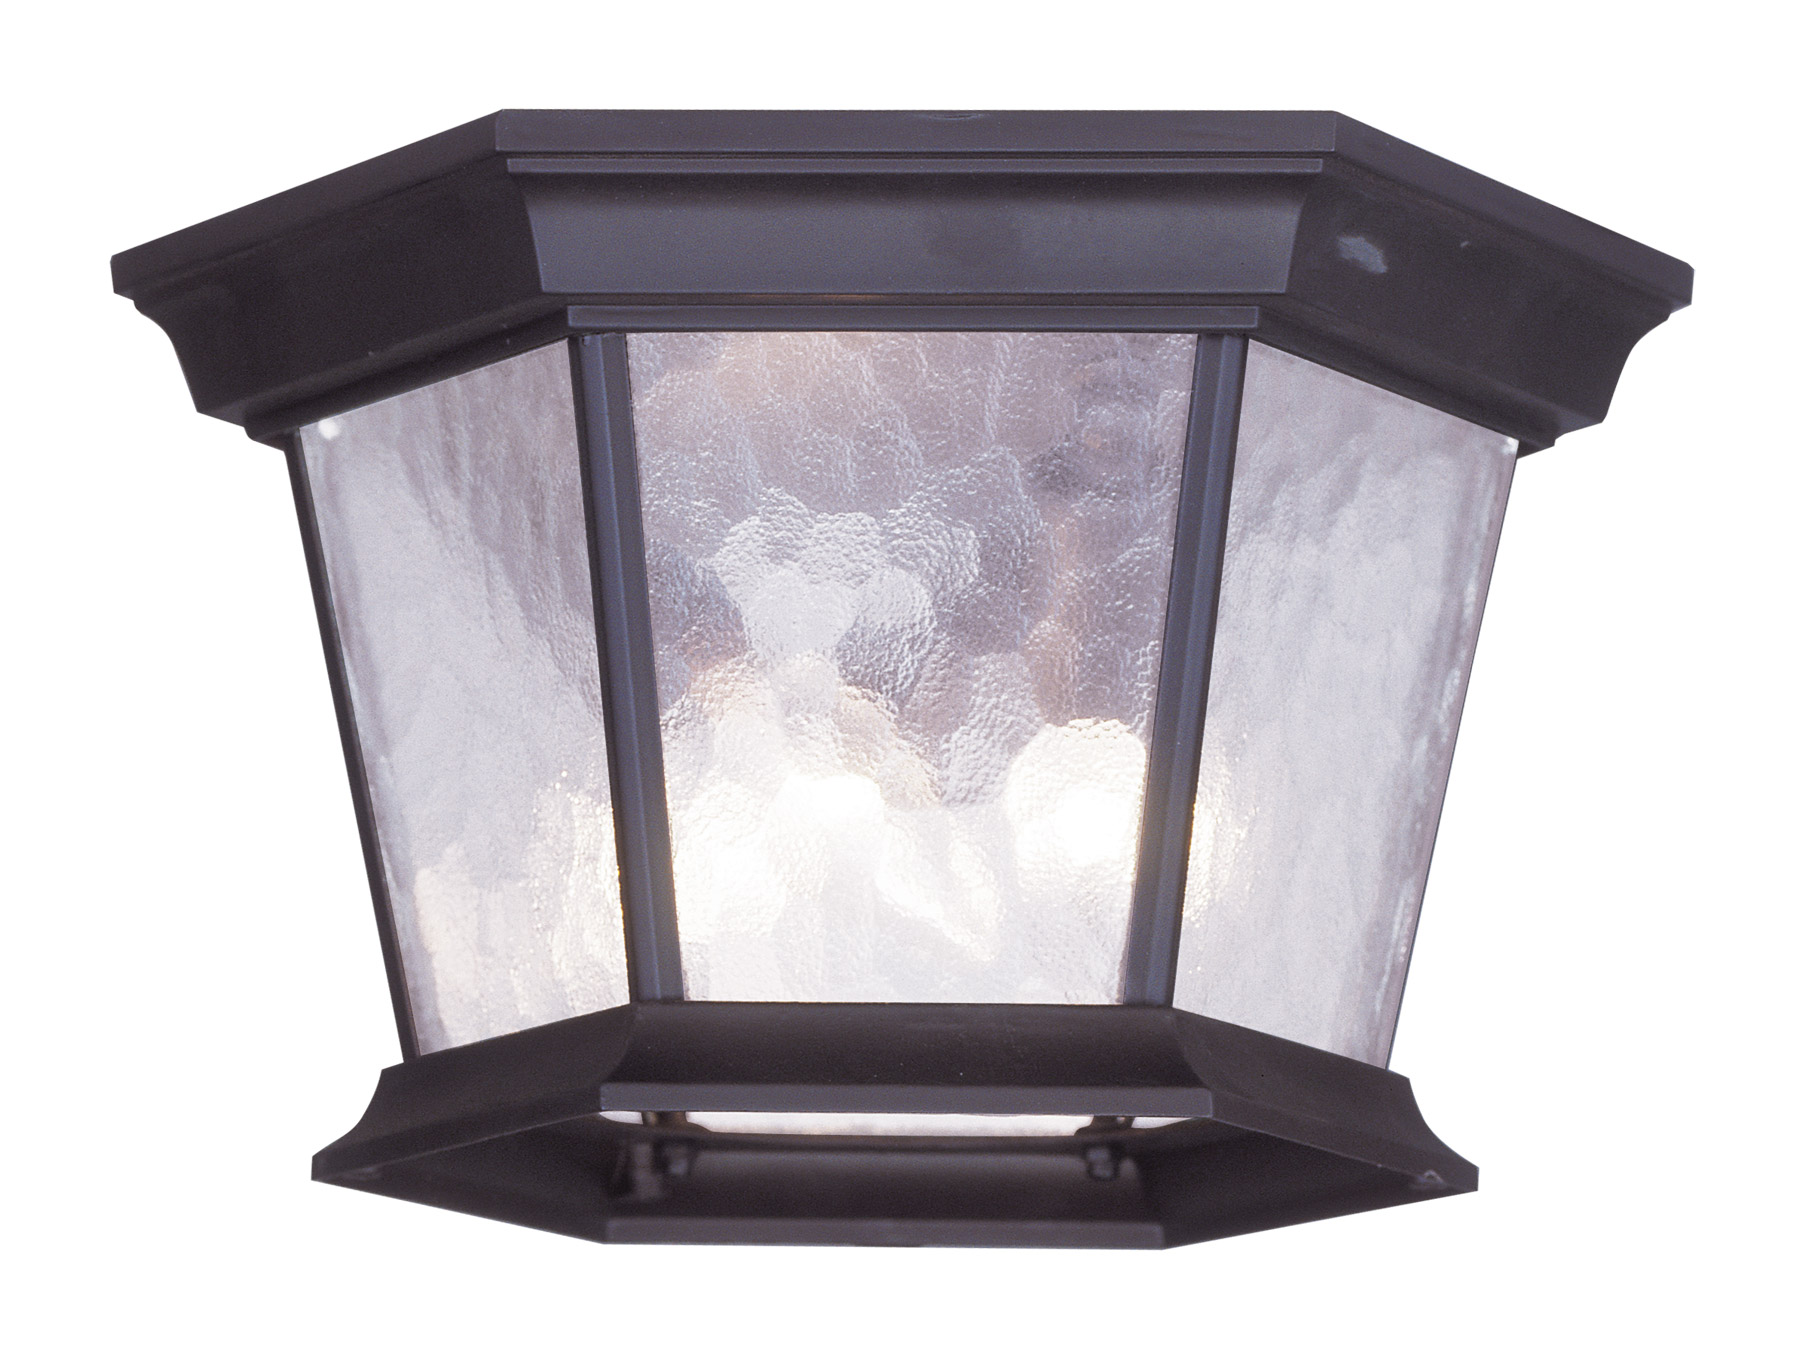 Livex Lighting 7510 07 Hamilton Outdoor Flush Mount Ceiling Fixture